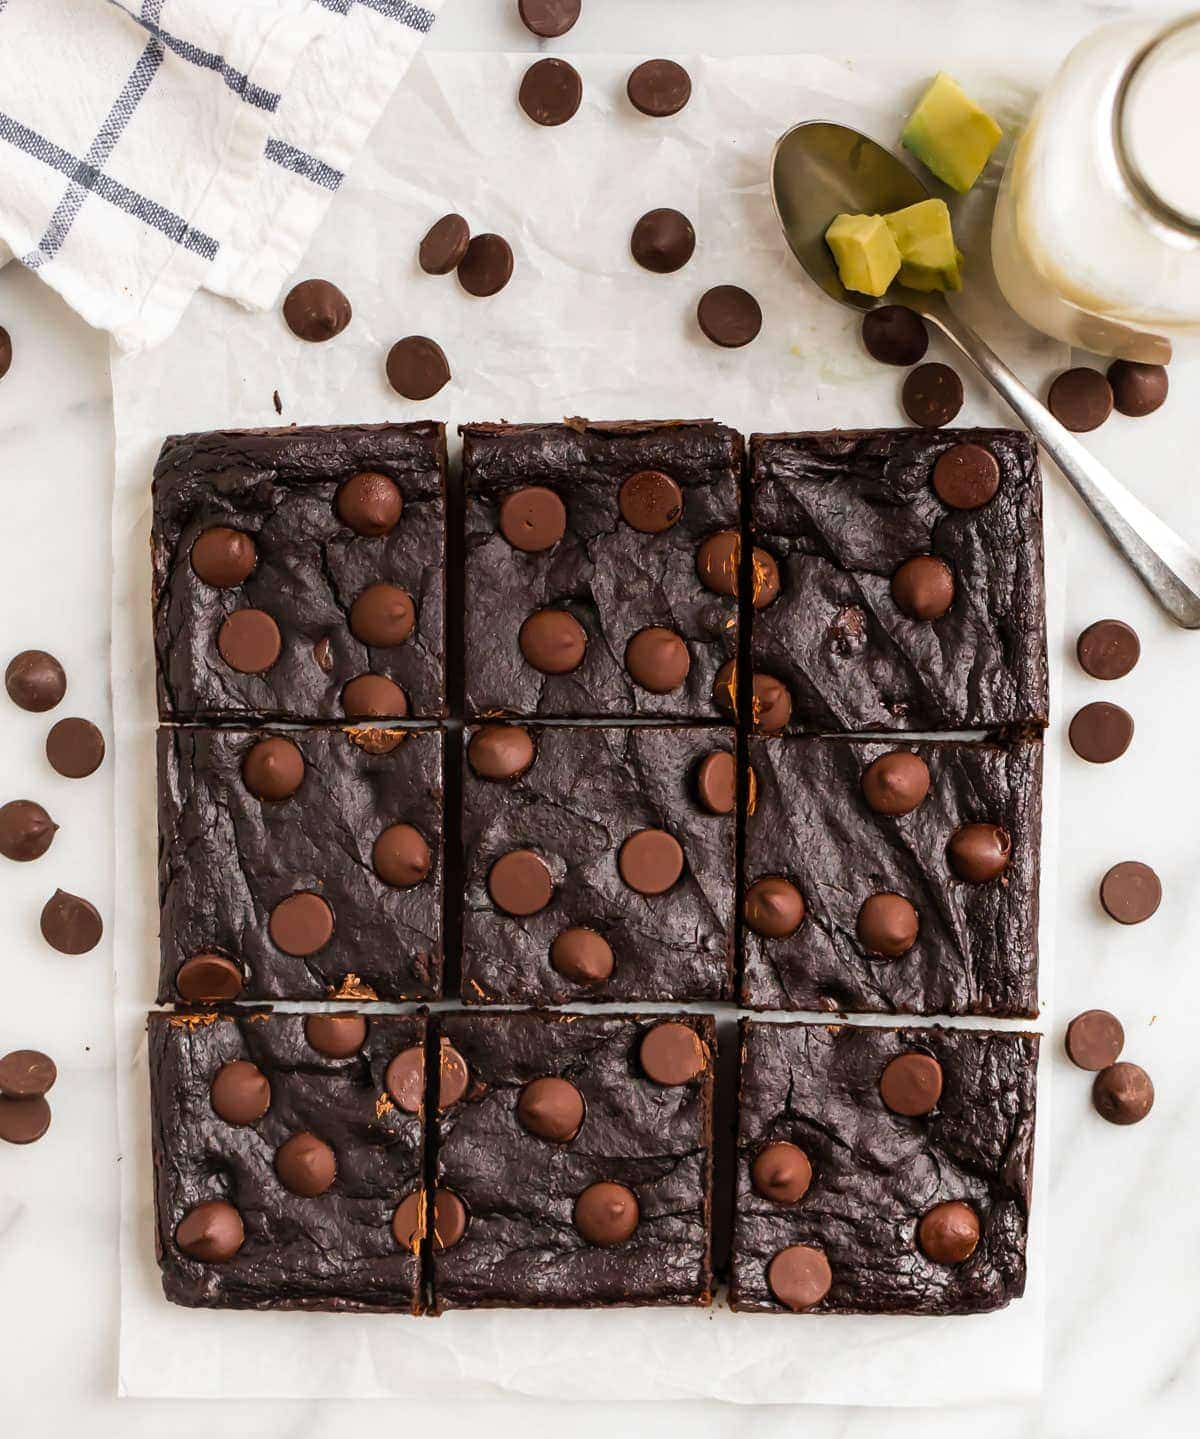 Fudgy Avocado Brownies. Ultra moist, healthy with double the chocolate! Gluten free, grain free, and made in just ONE BOWL. This easy brownie recipe is my favorite healthy dessert.